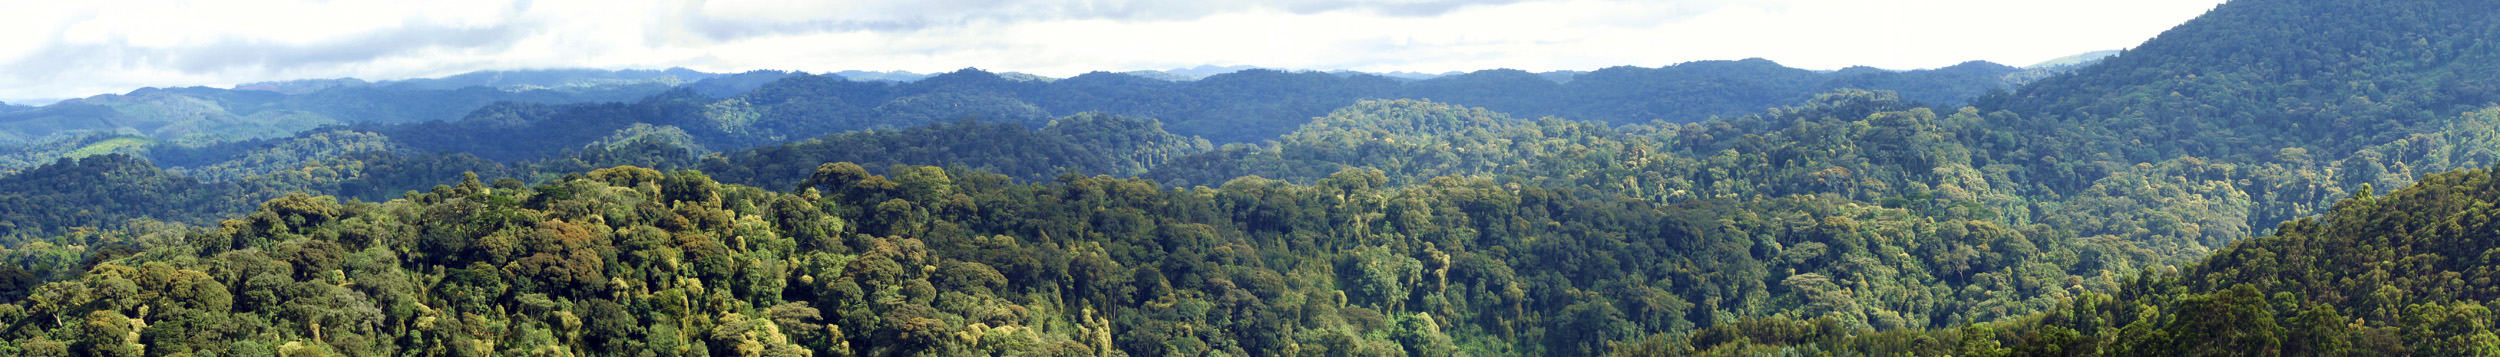 Best Side By Side >> Nyungwe National Park – Travel guide at Wikivoyage